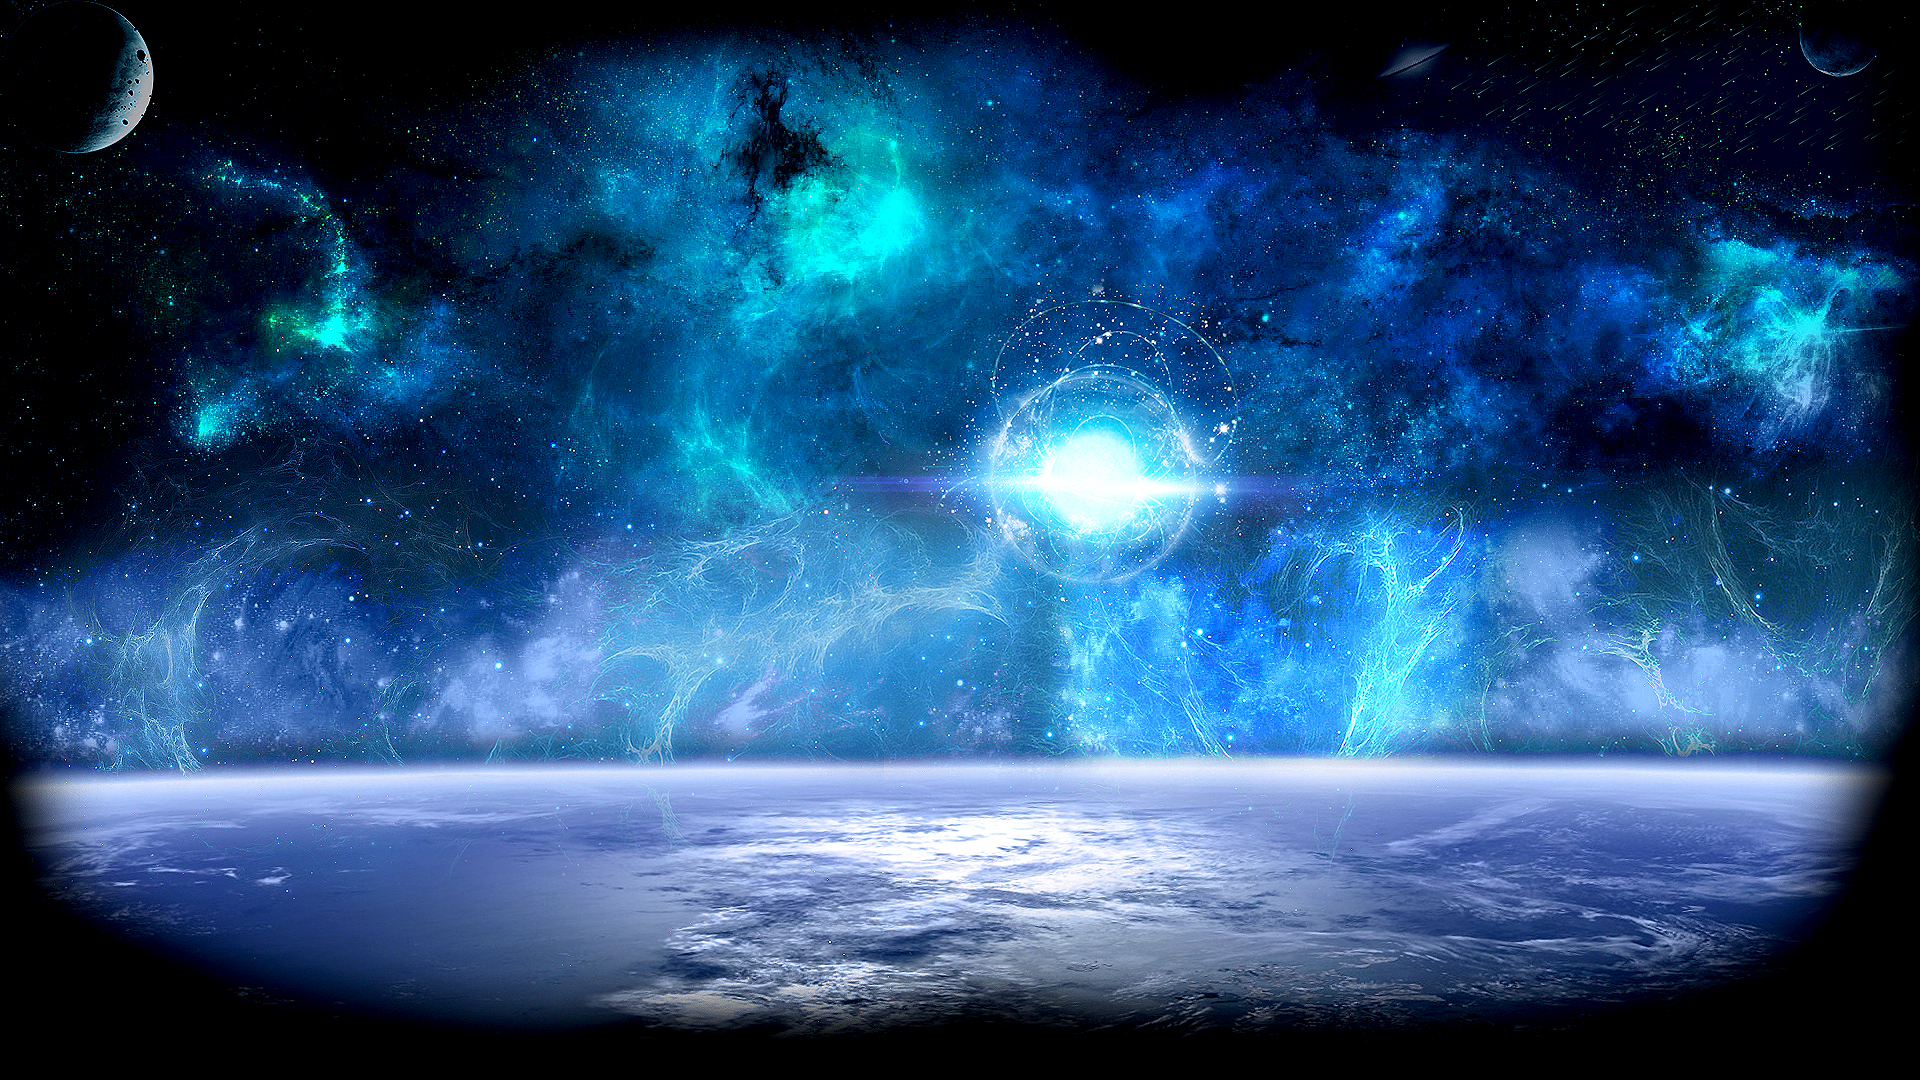 Epic Space Wallpapers 1920x1080 Images & Pictures - Becuo